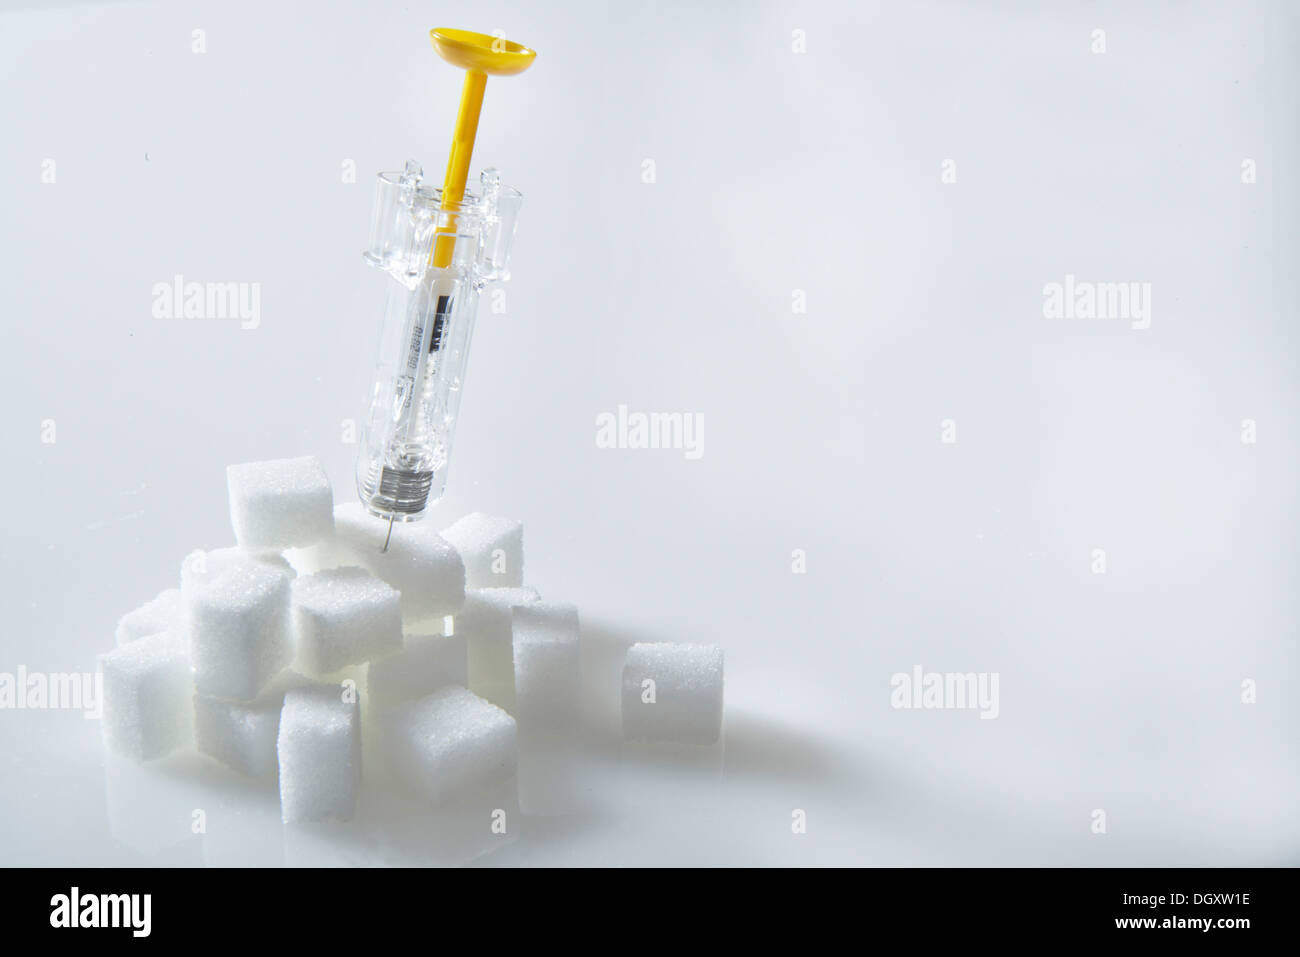 Syringe filled with insulin, insulin injection sticking in a pile of sugar cubes - Stock Image